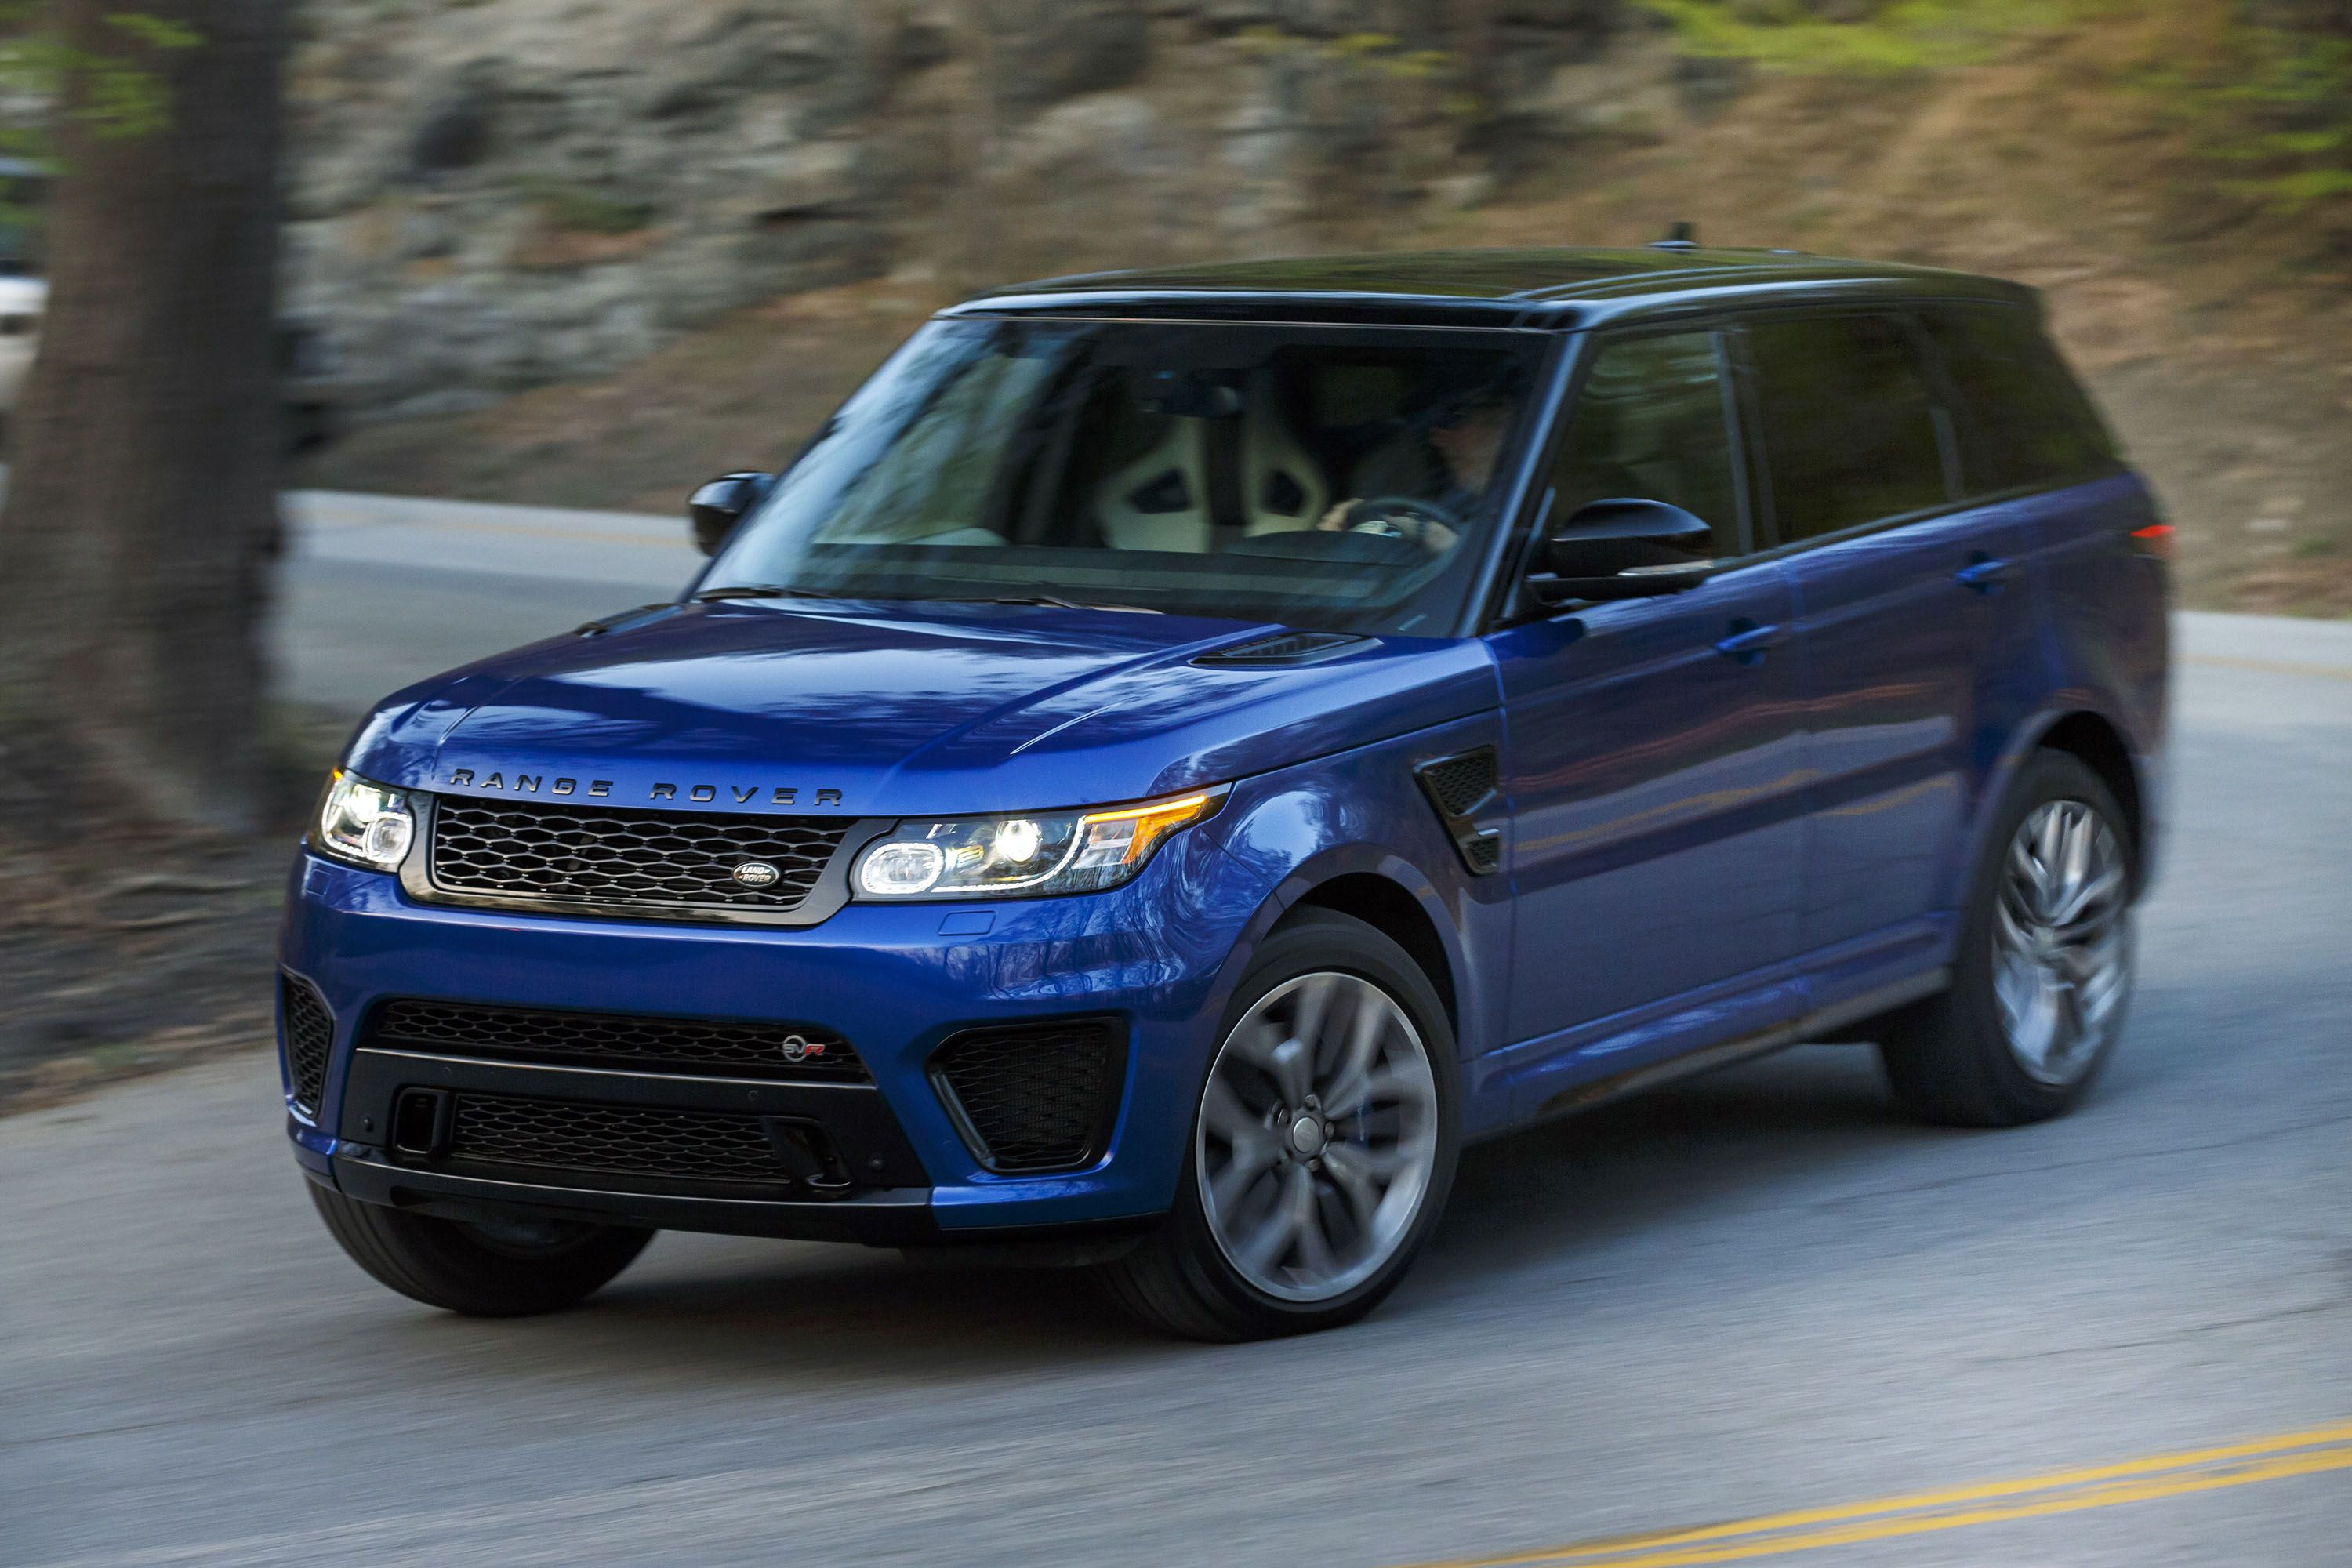 2015 Range Rover Sport SVR Official Photo Gallery